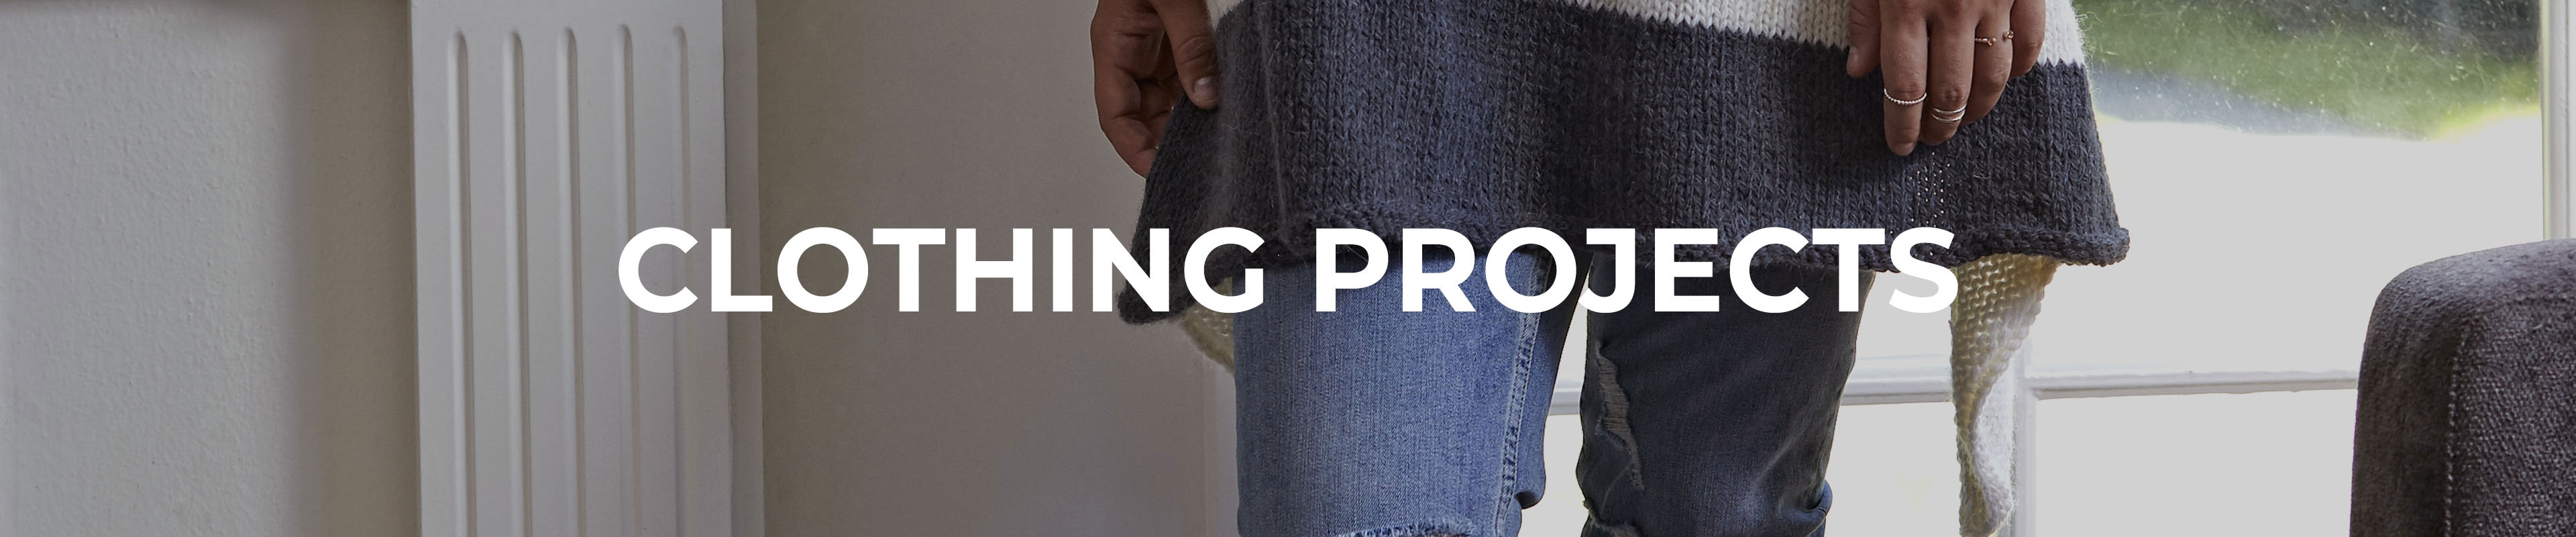 Clothing Projects